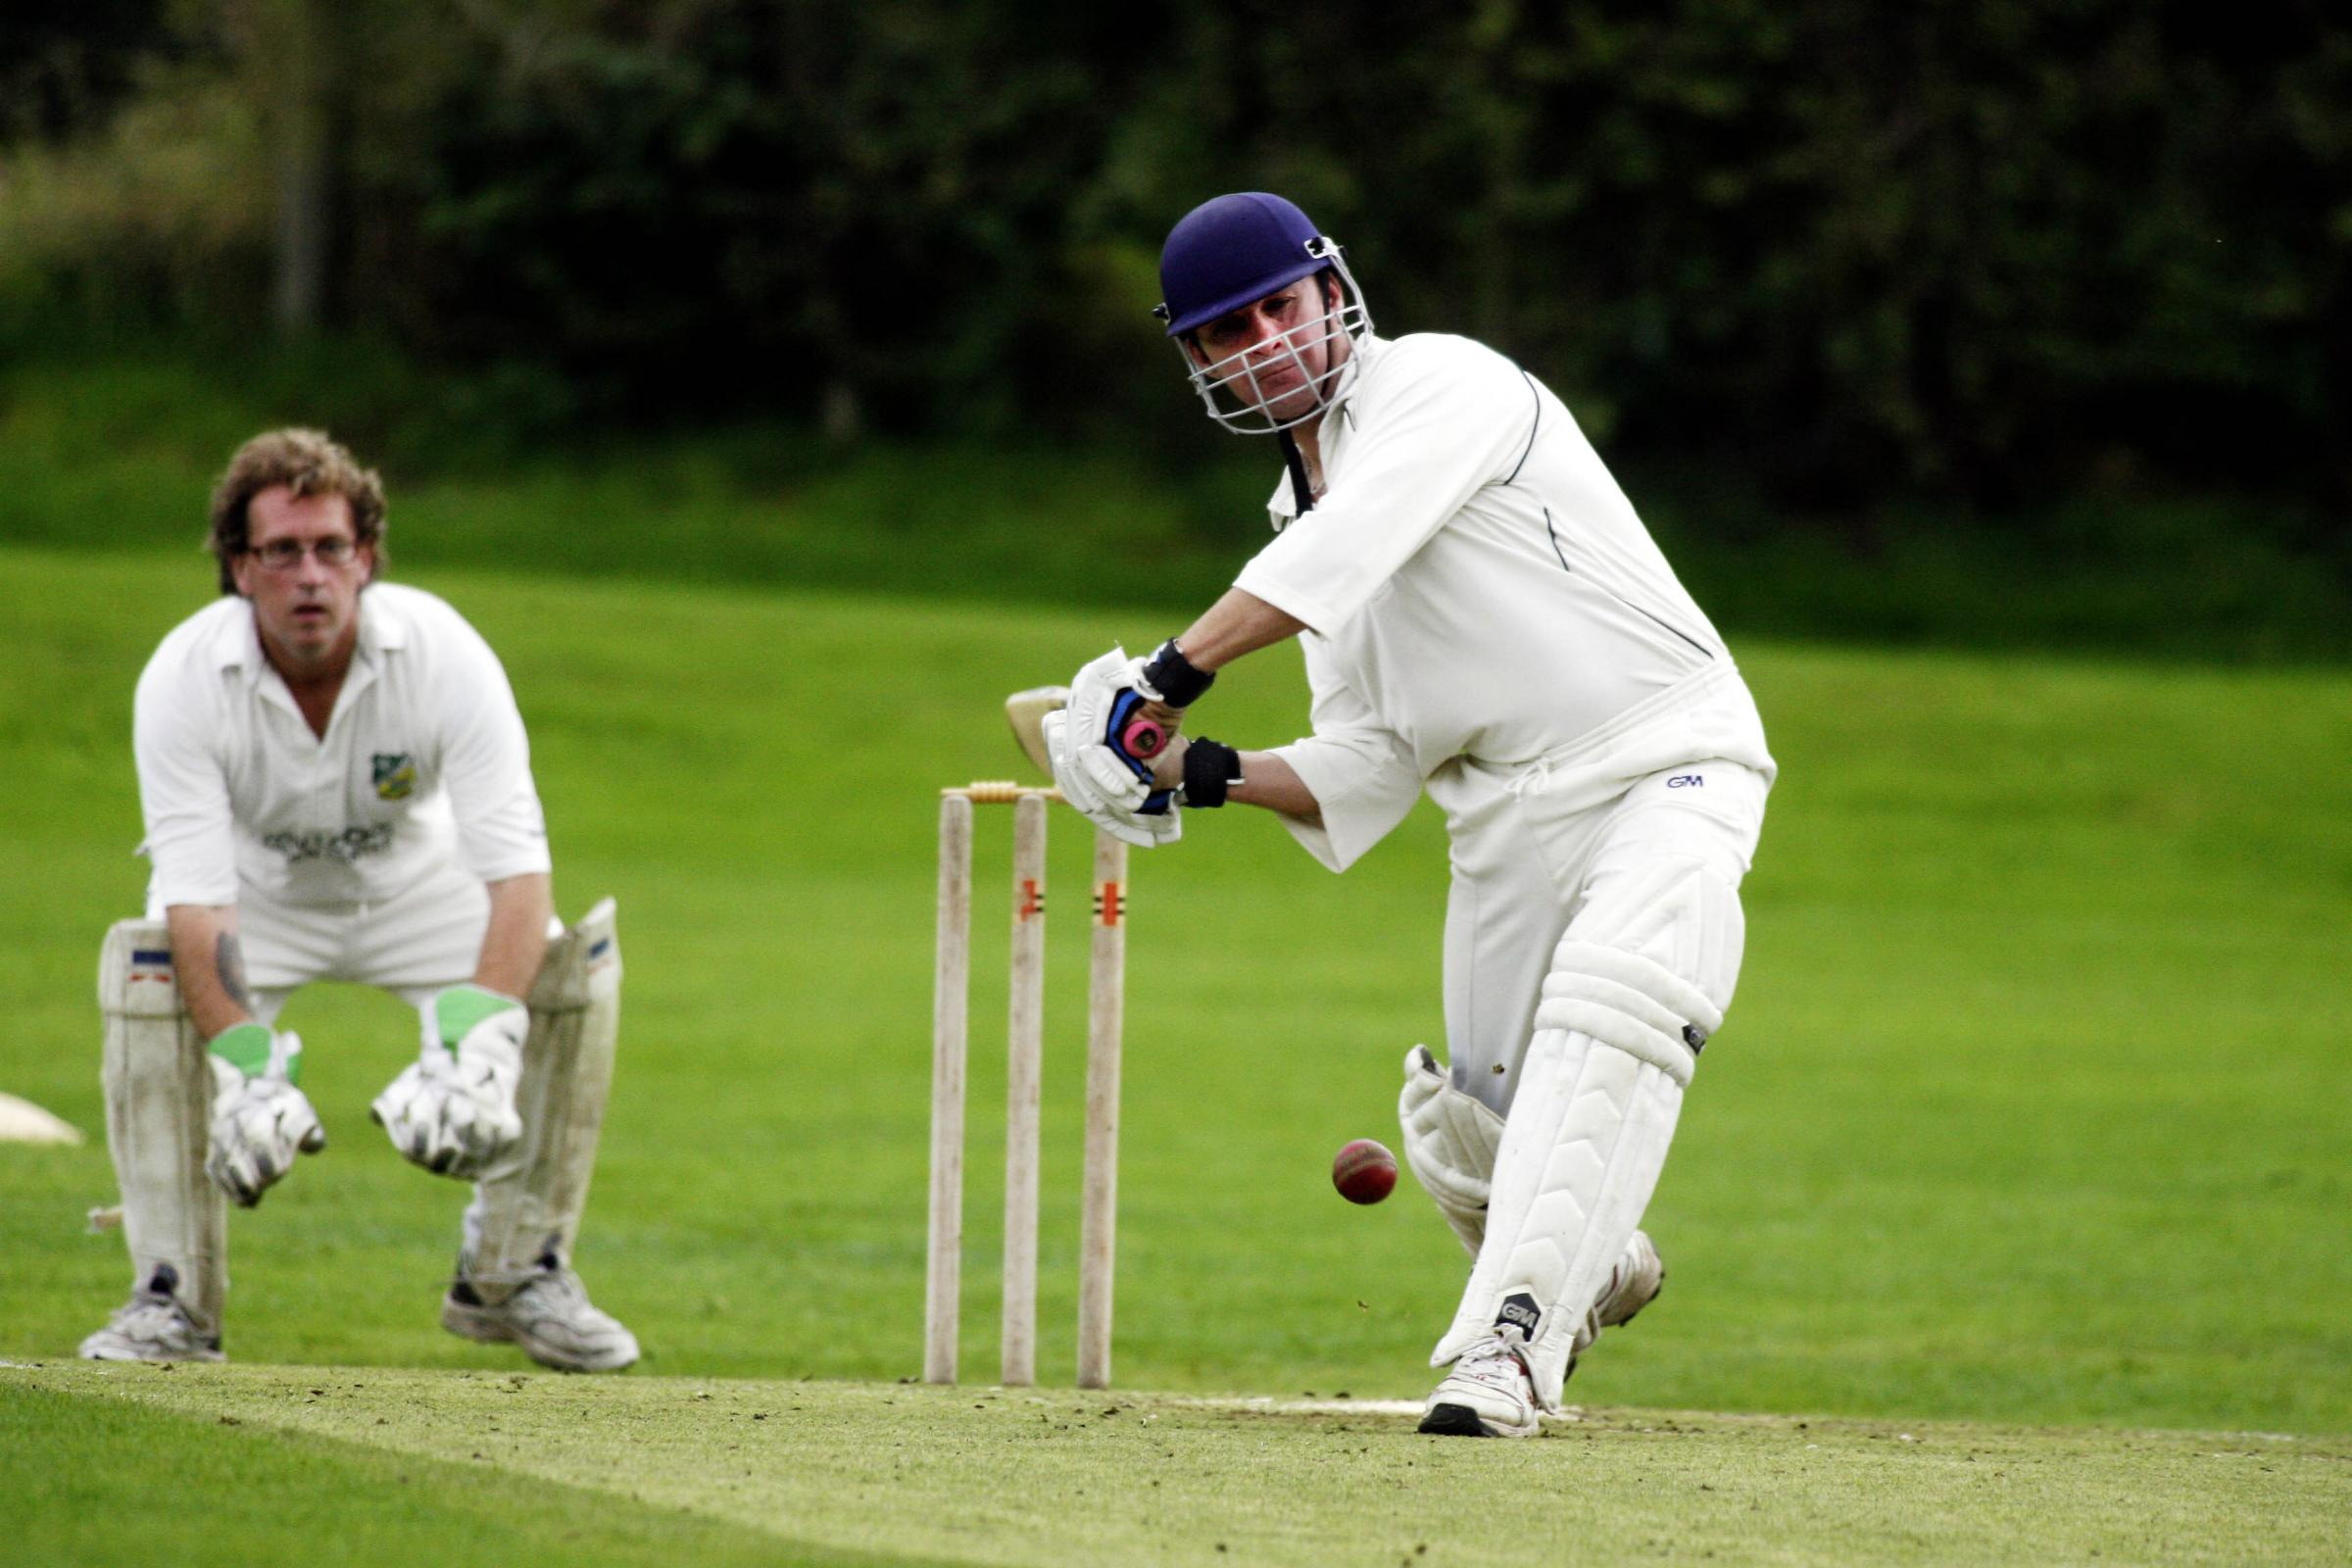 Adie Powis made 26 for Cullingworth